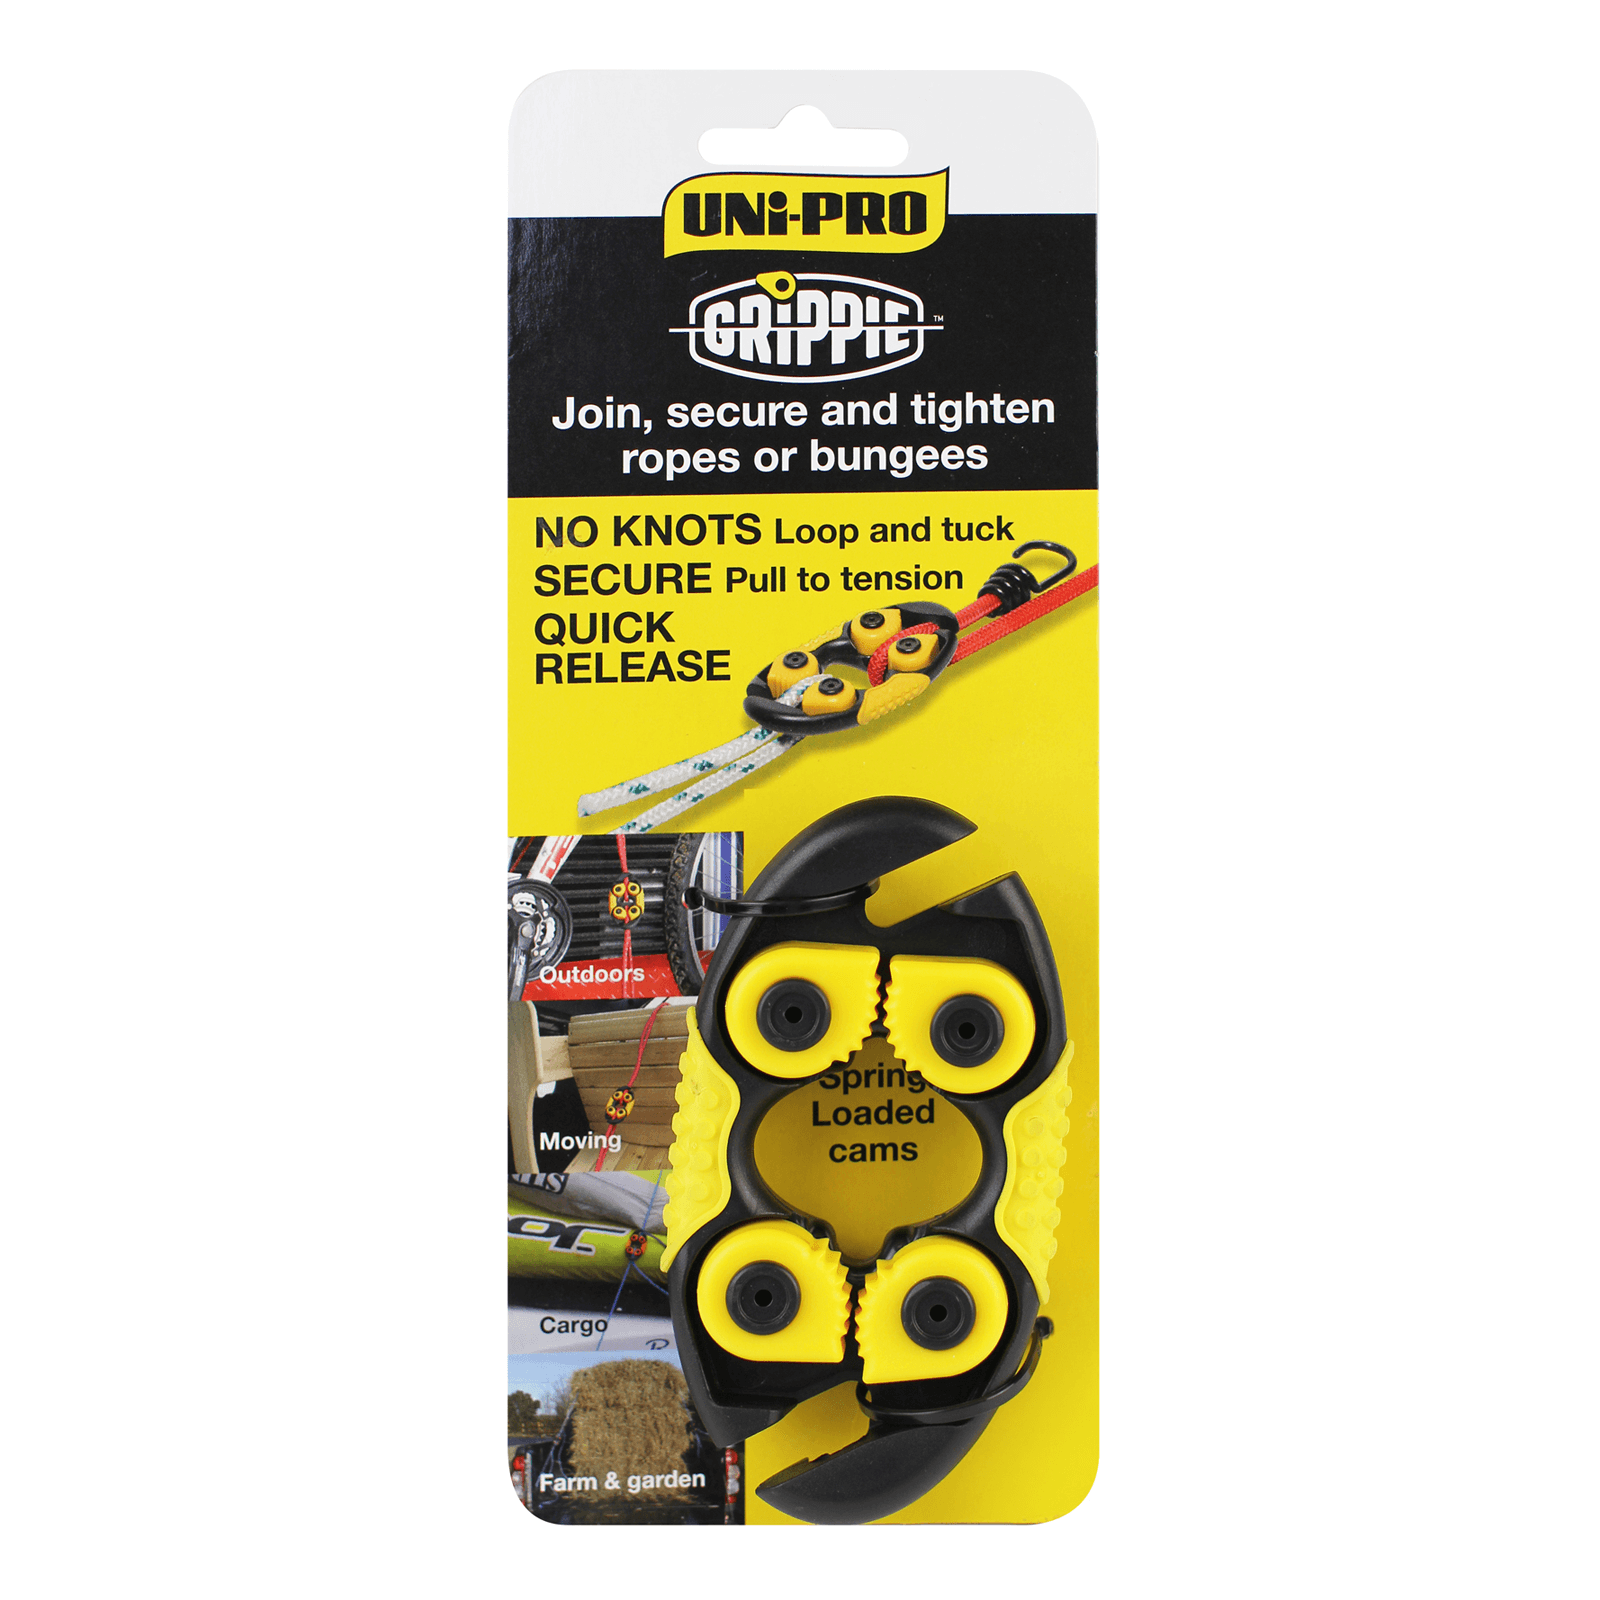 UNi-PRO Grippie Rope and Bungee Fastening System